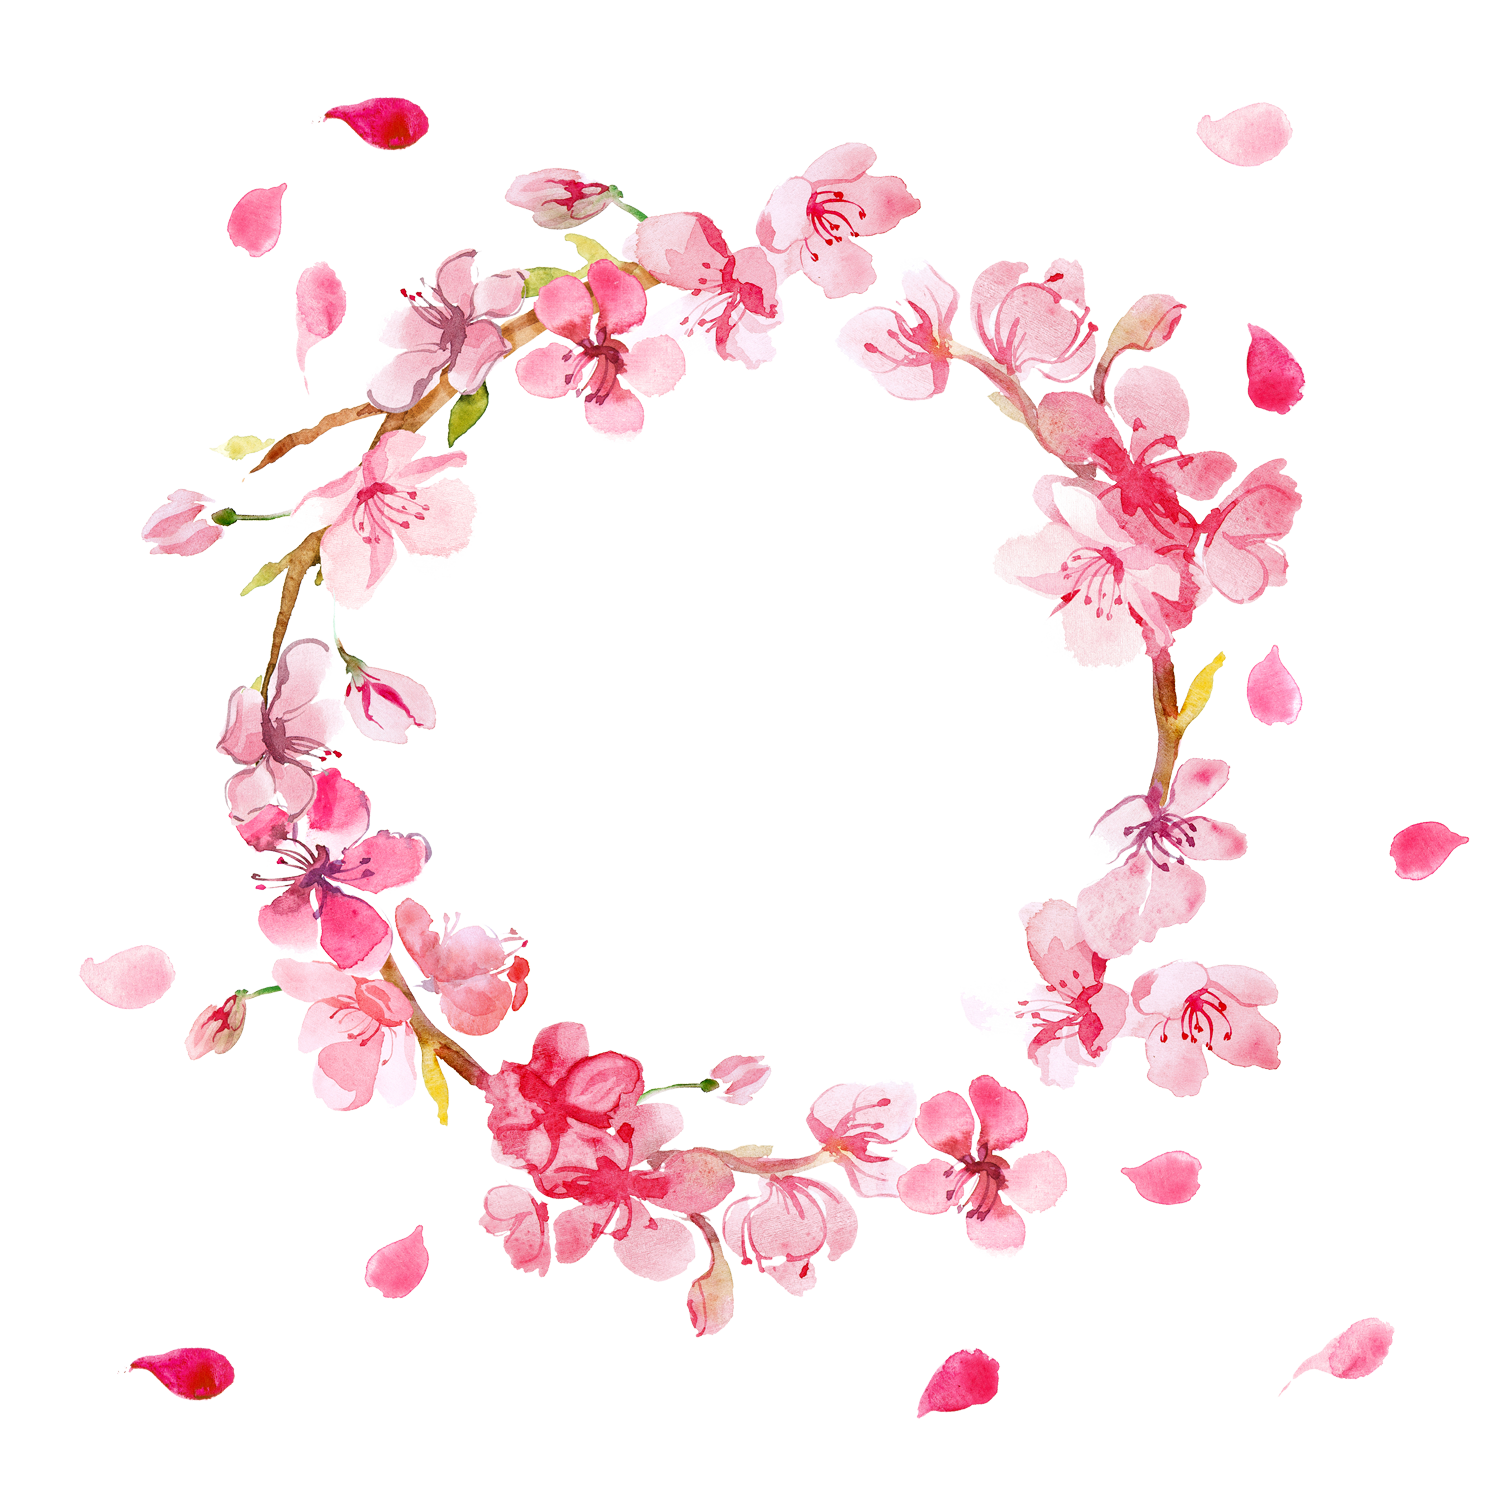 Free Pink Flowers Wreath PNG